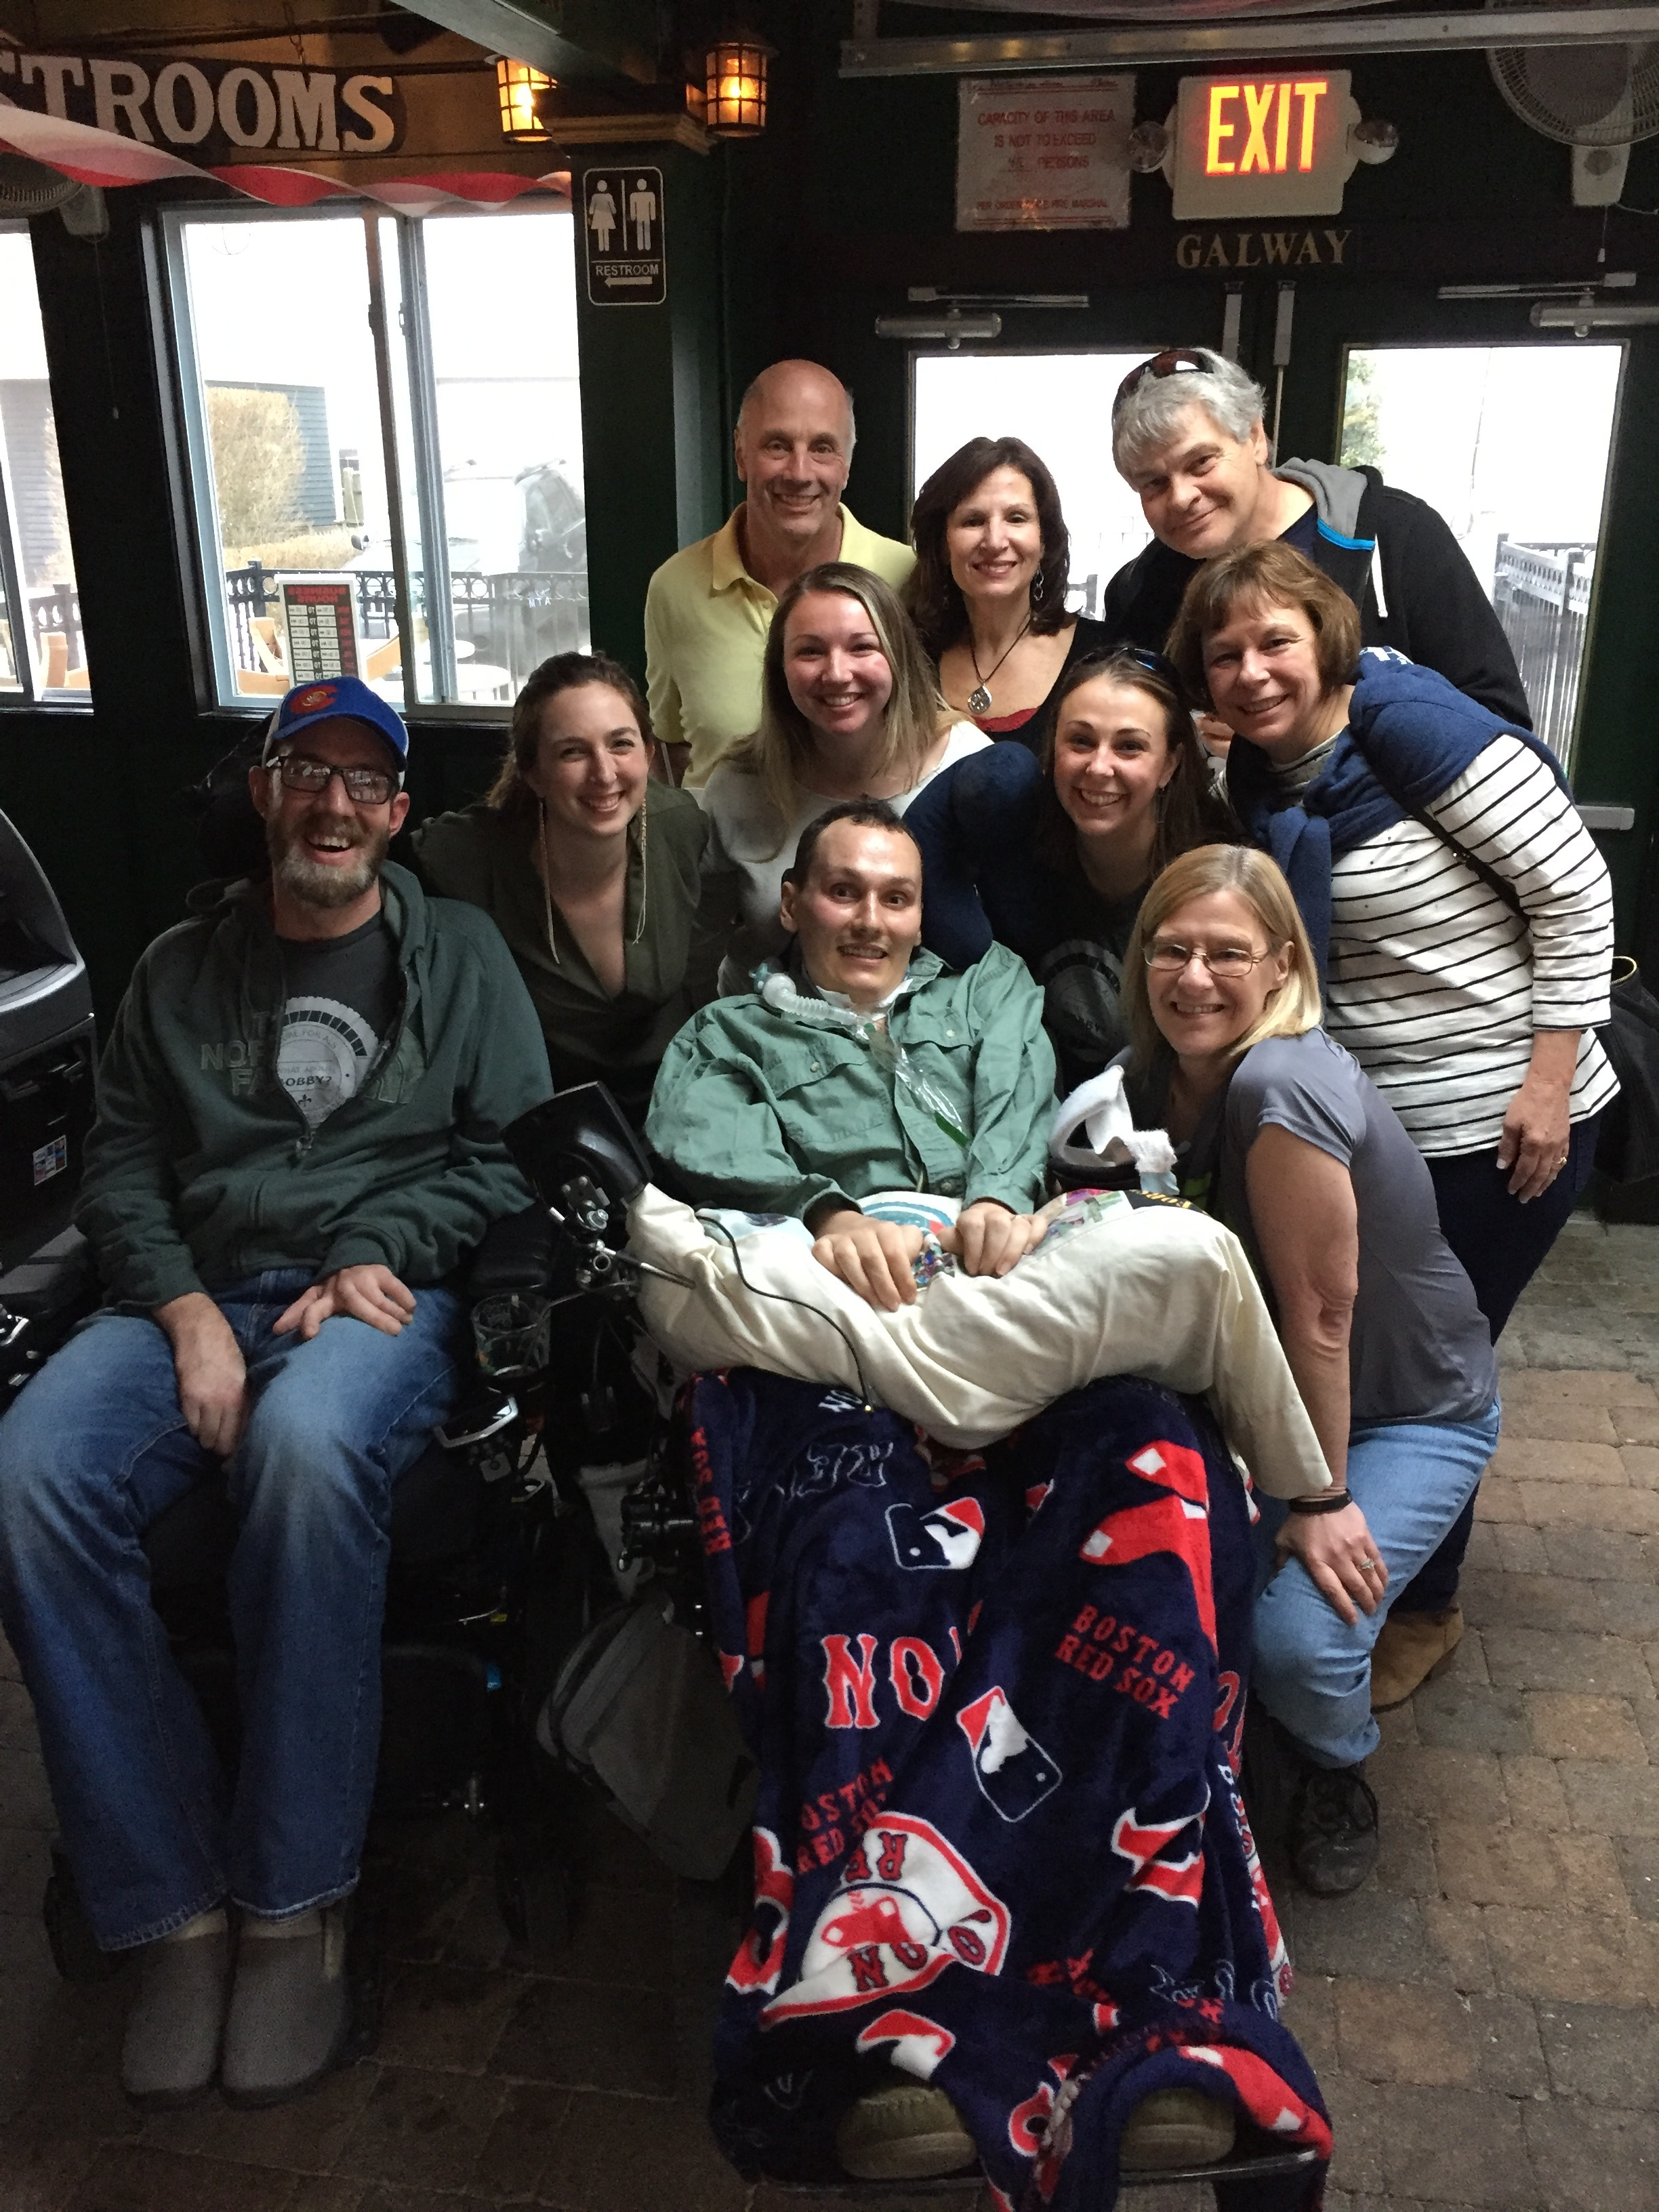 The Forster Family with fellow ALS Warrior, Kyle Connors.